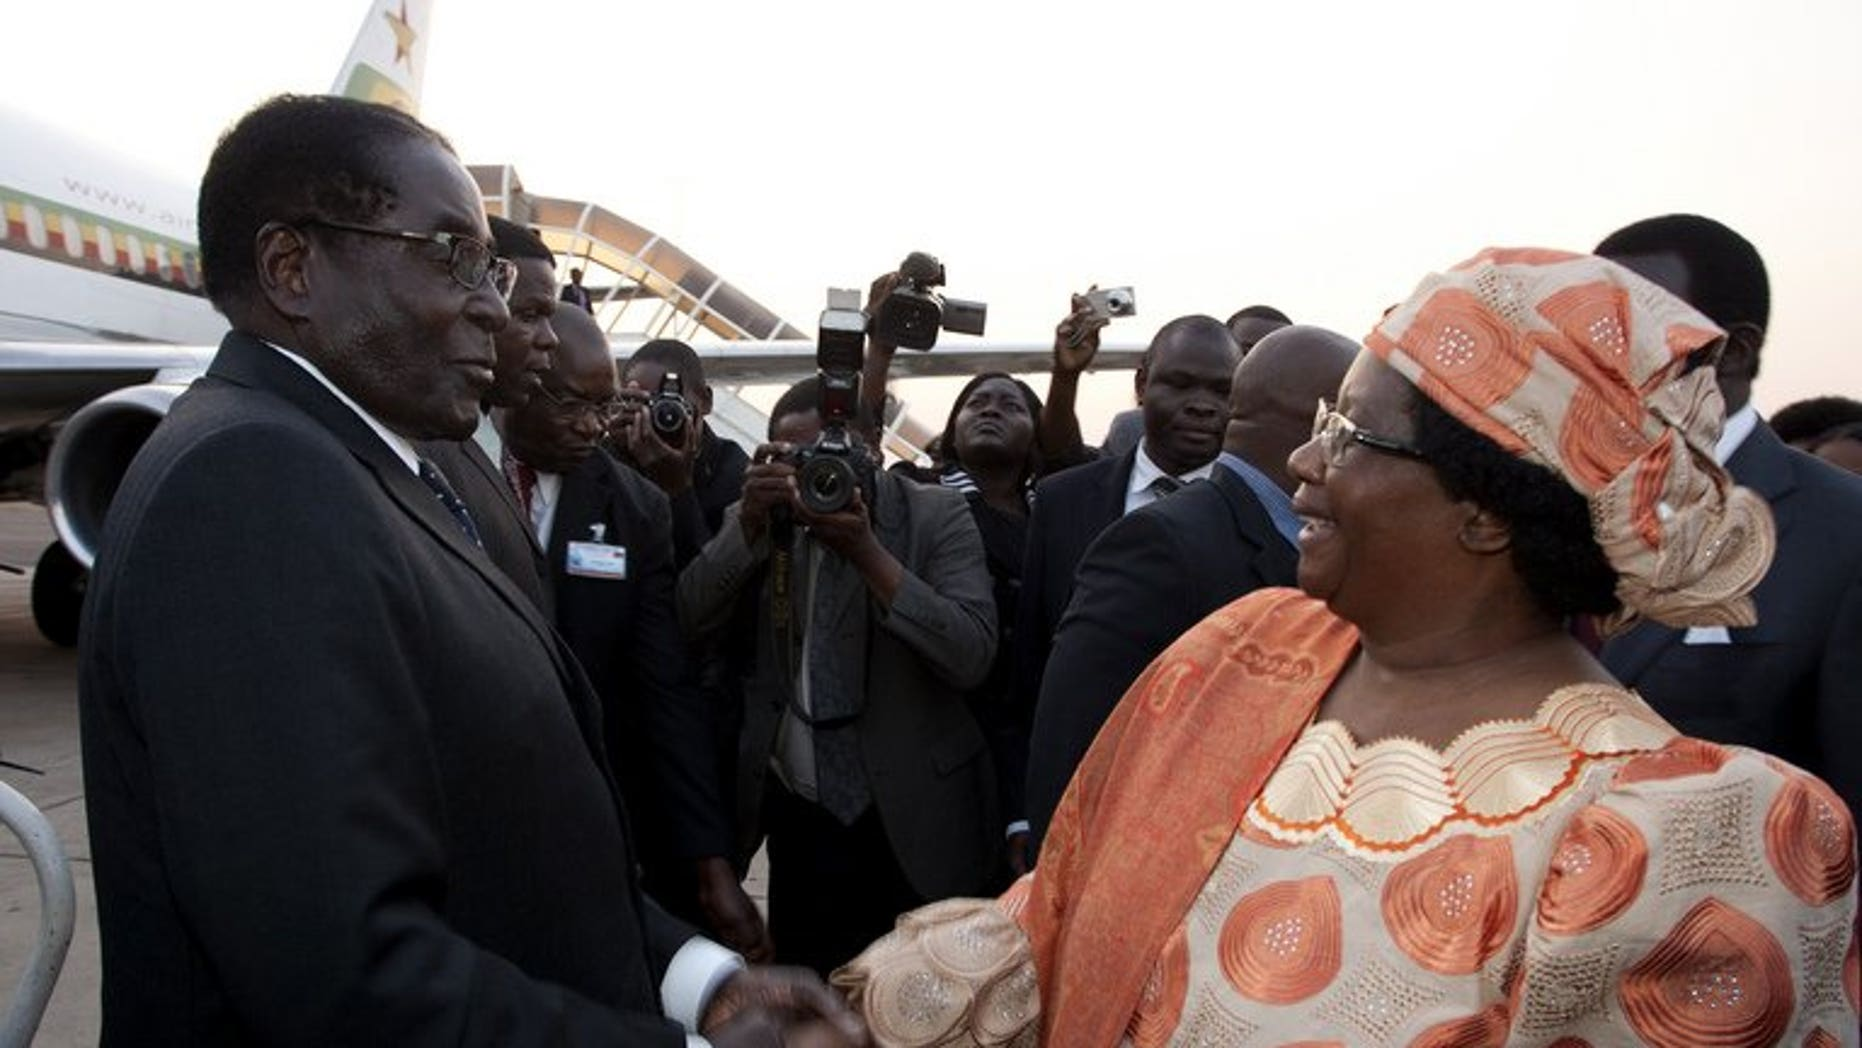 Malawi President Joyce Banda welcomes Robert Mugabe at Kamuzu Airport in Lilongwe on Friday. Southern African leaders opened an annual summit Saturday endorsing disputed elections in Zimbabwe that extended Mugabe's 33-year rule by another five years.